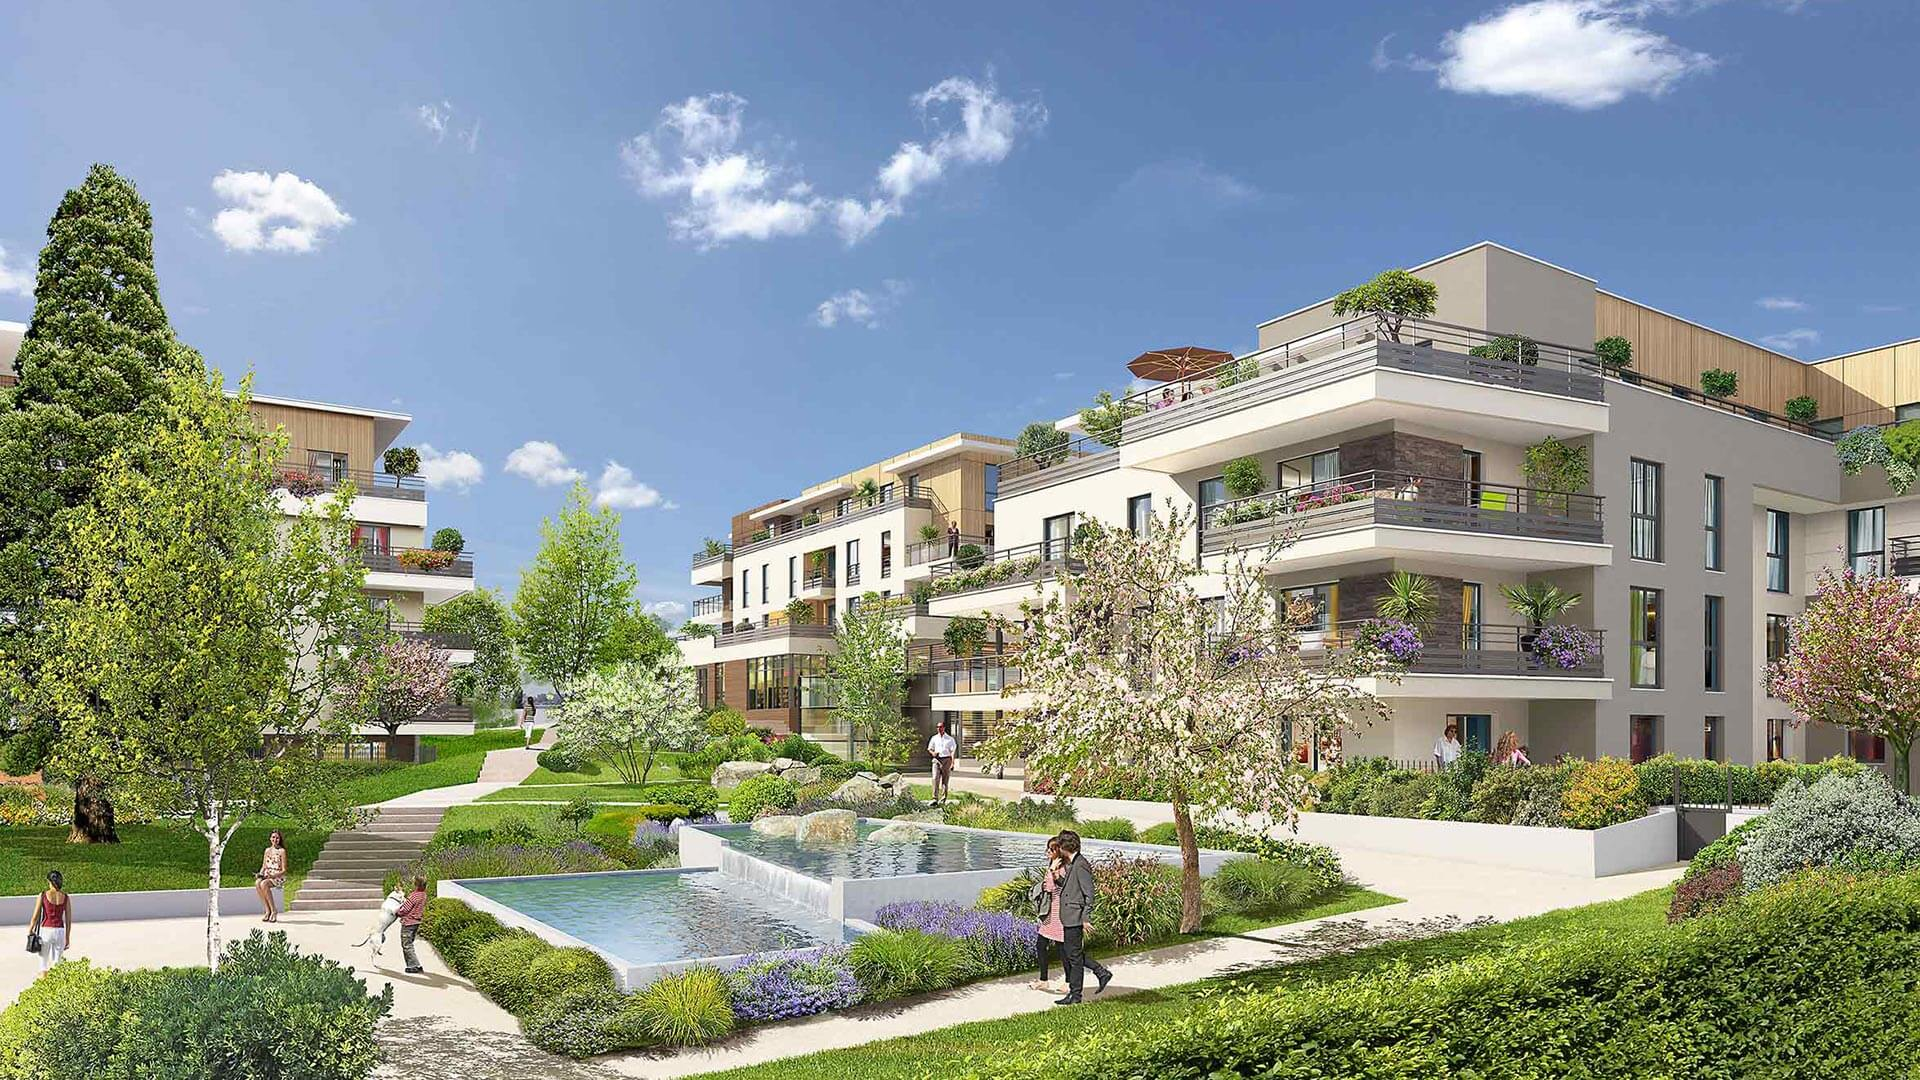 Grand coeur programme immobilier neuf bures sur yvette for Immobilier neuf idf